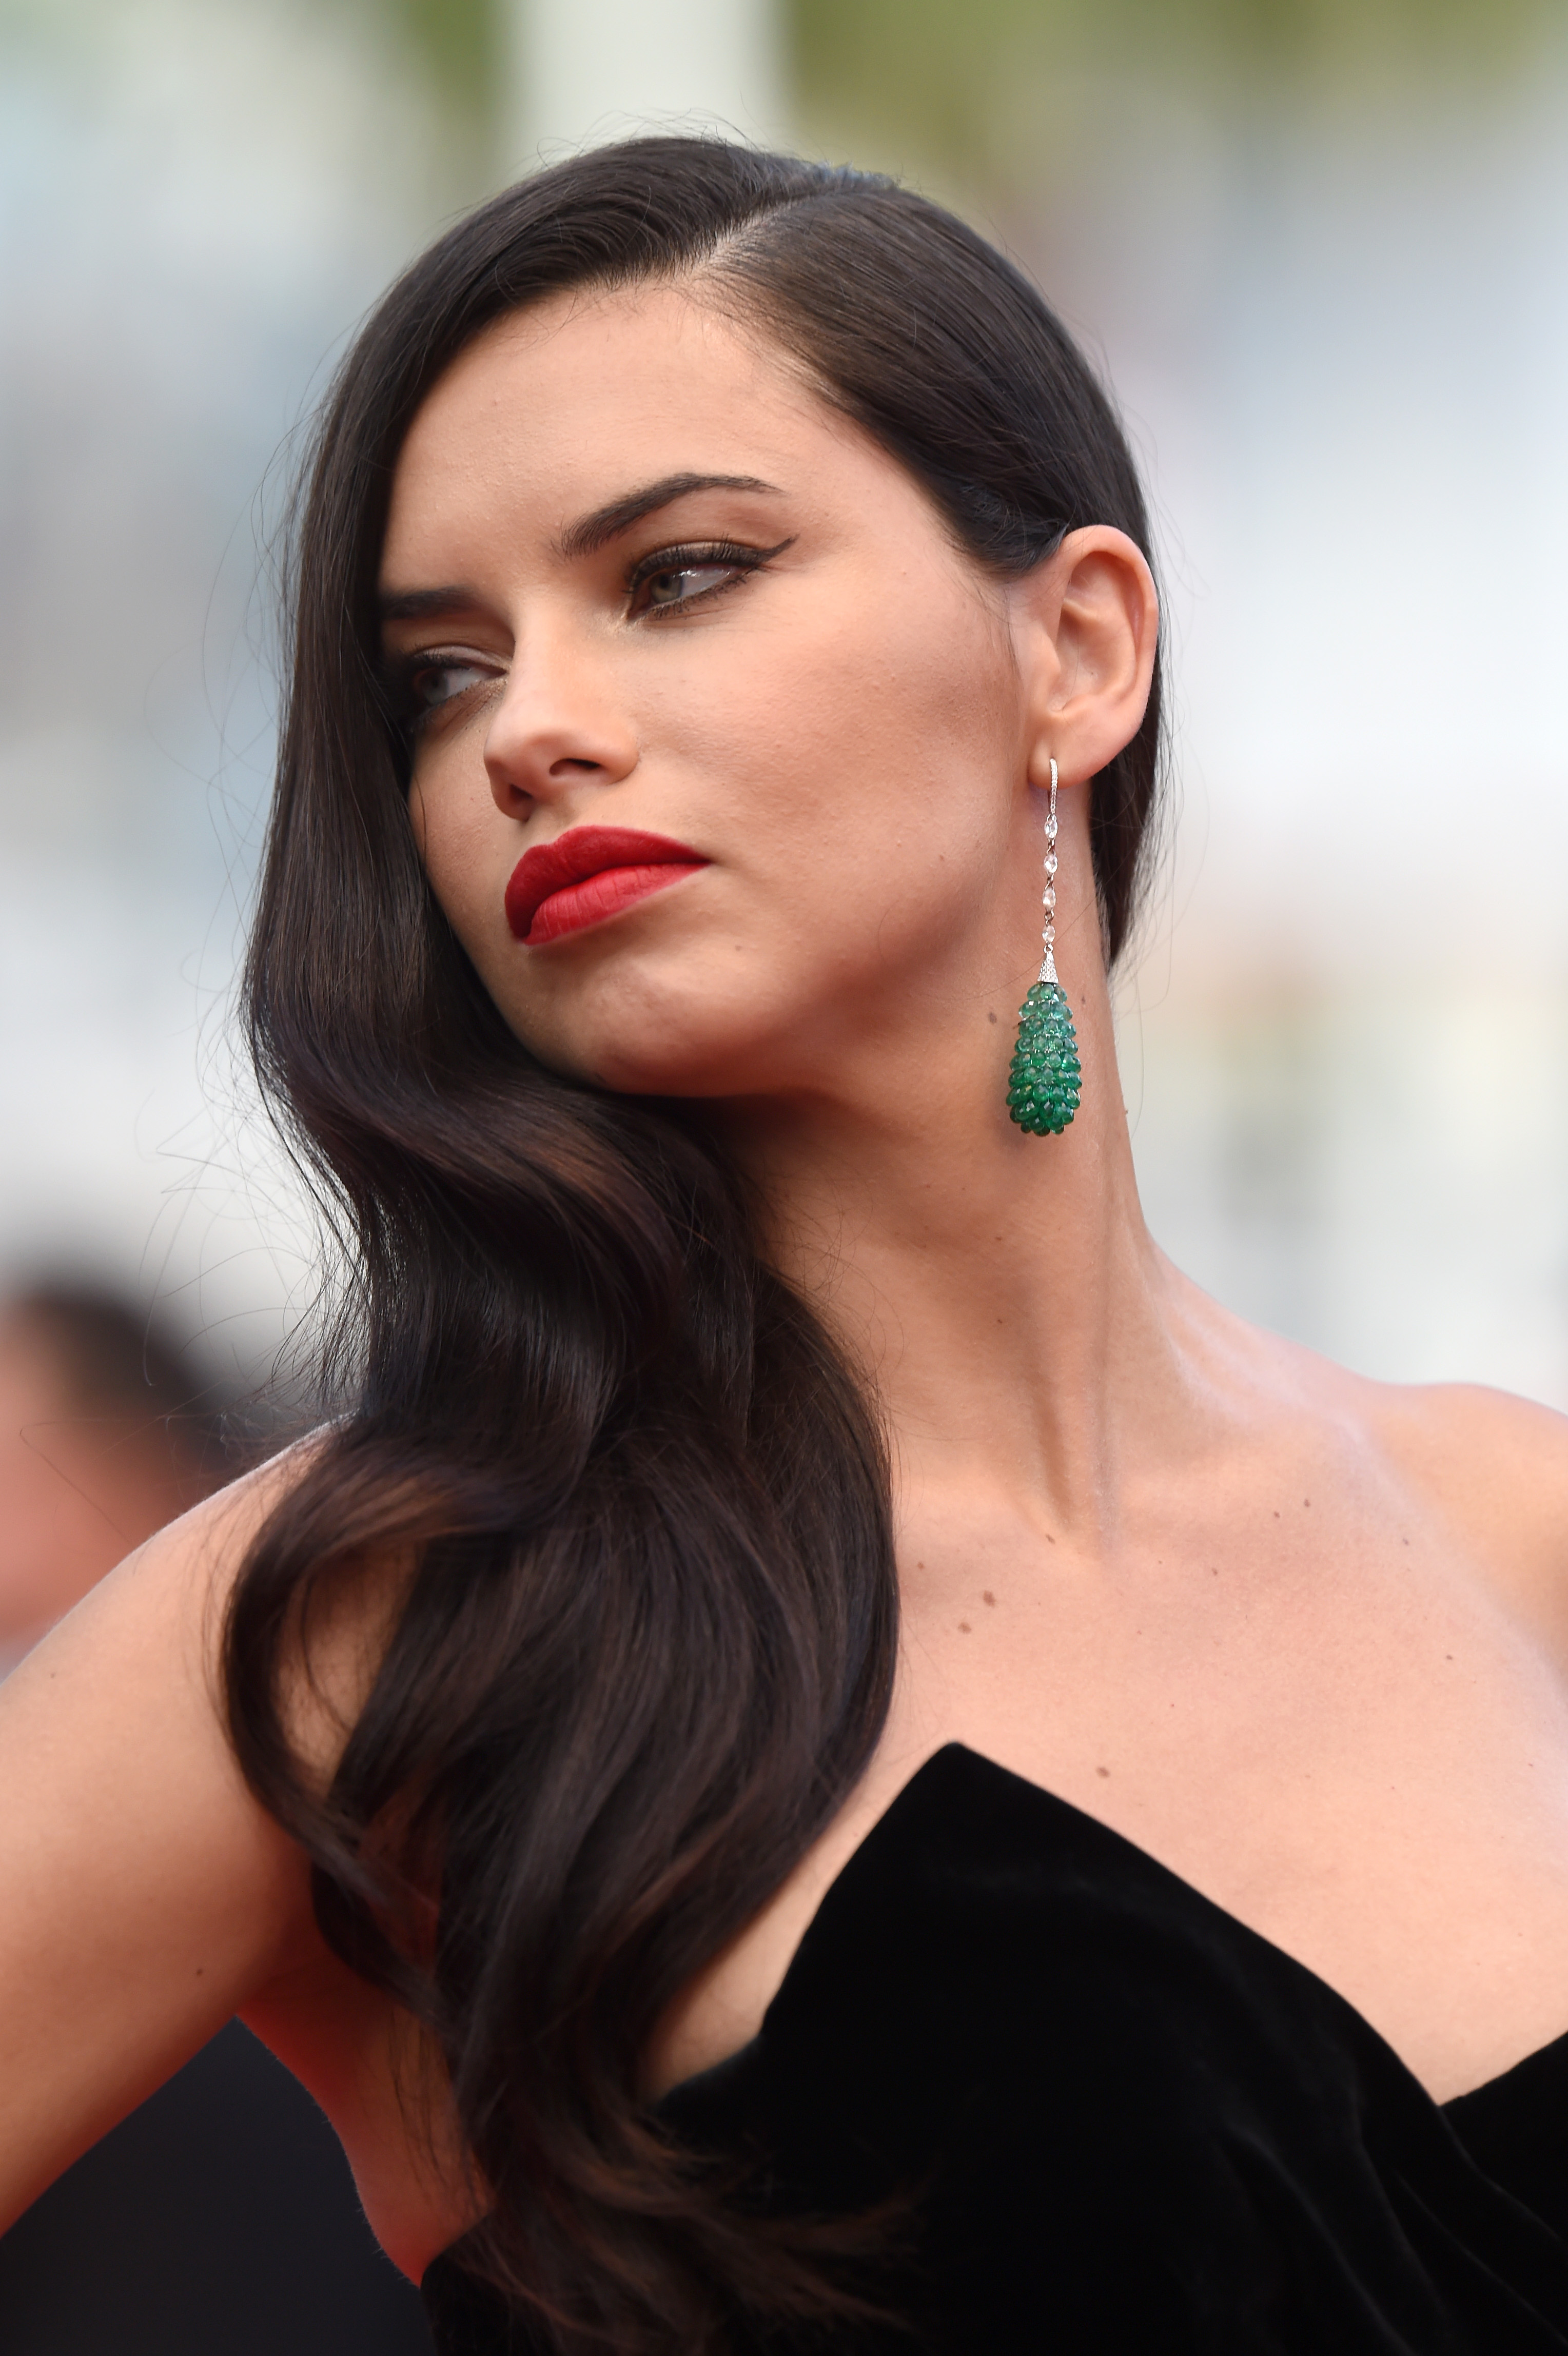 adriana lima, hairstyle, lips, makeup, models